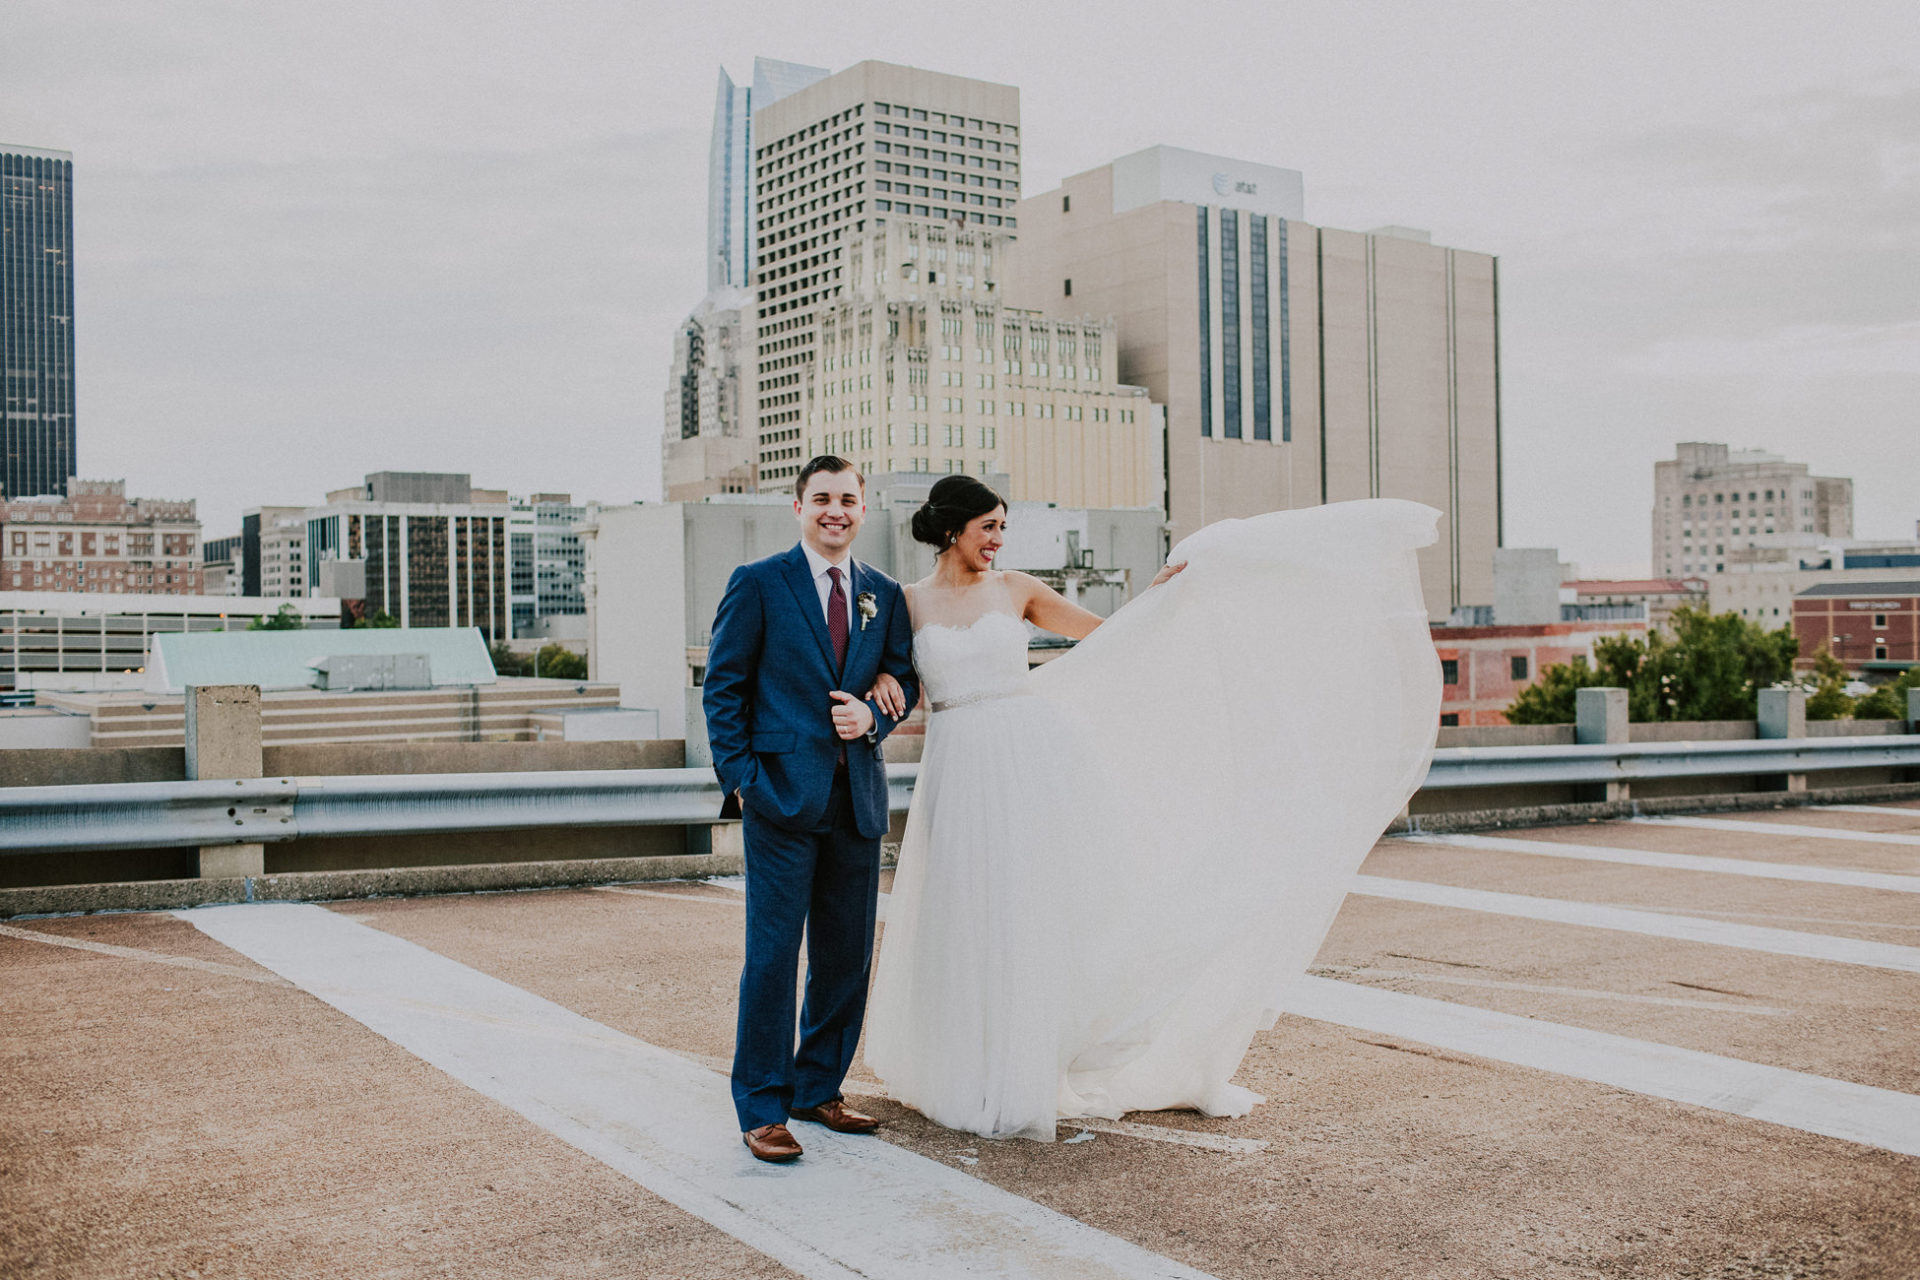 best-top-los-angeles-destination-wedding-photographer-hipster-modern-quirky-editorial-romantic-epic-26-okc-downtown-rooftop